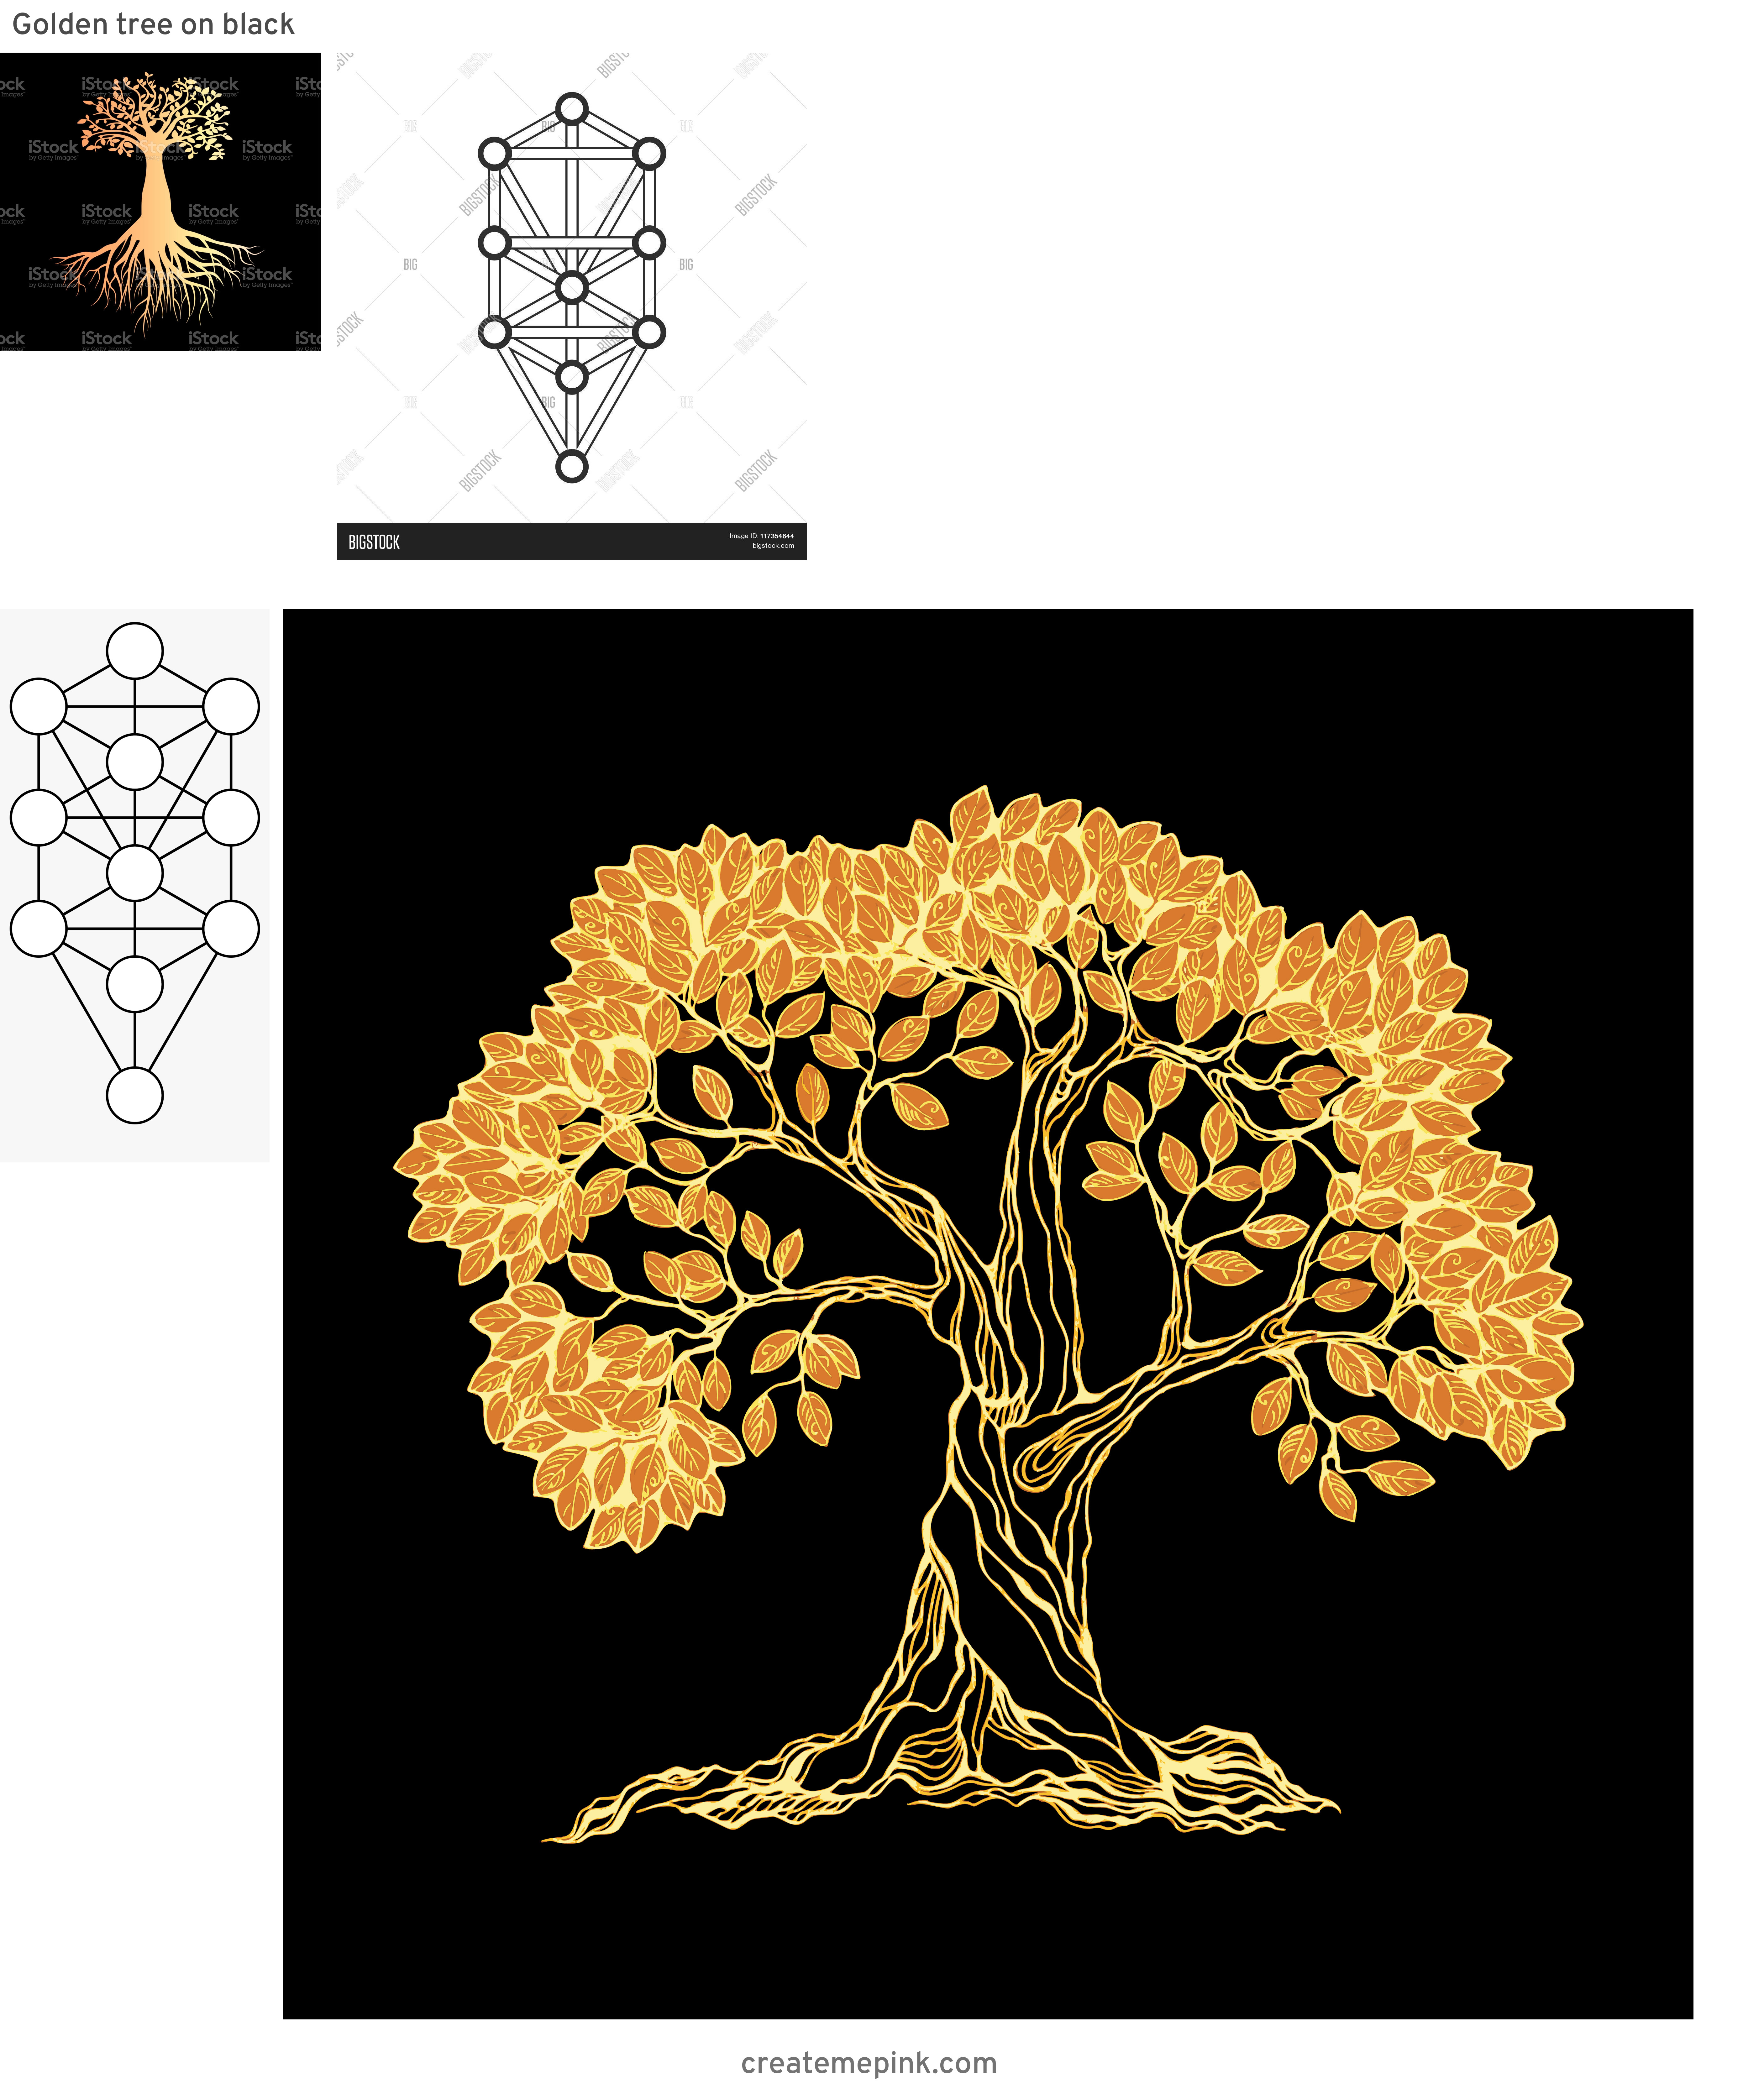 Vector Images Black Tree Of Life: Golden Tree On Black